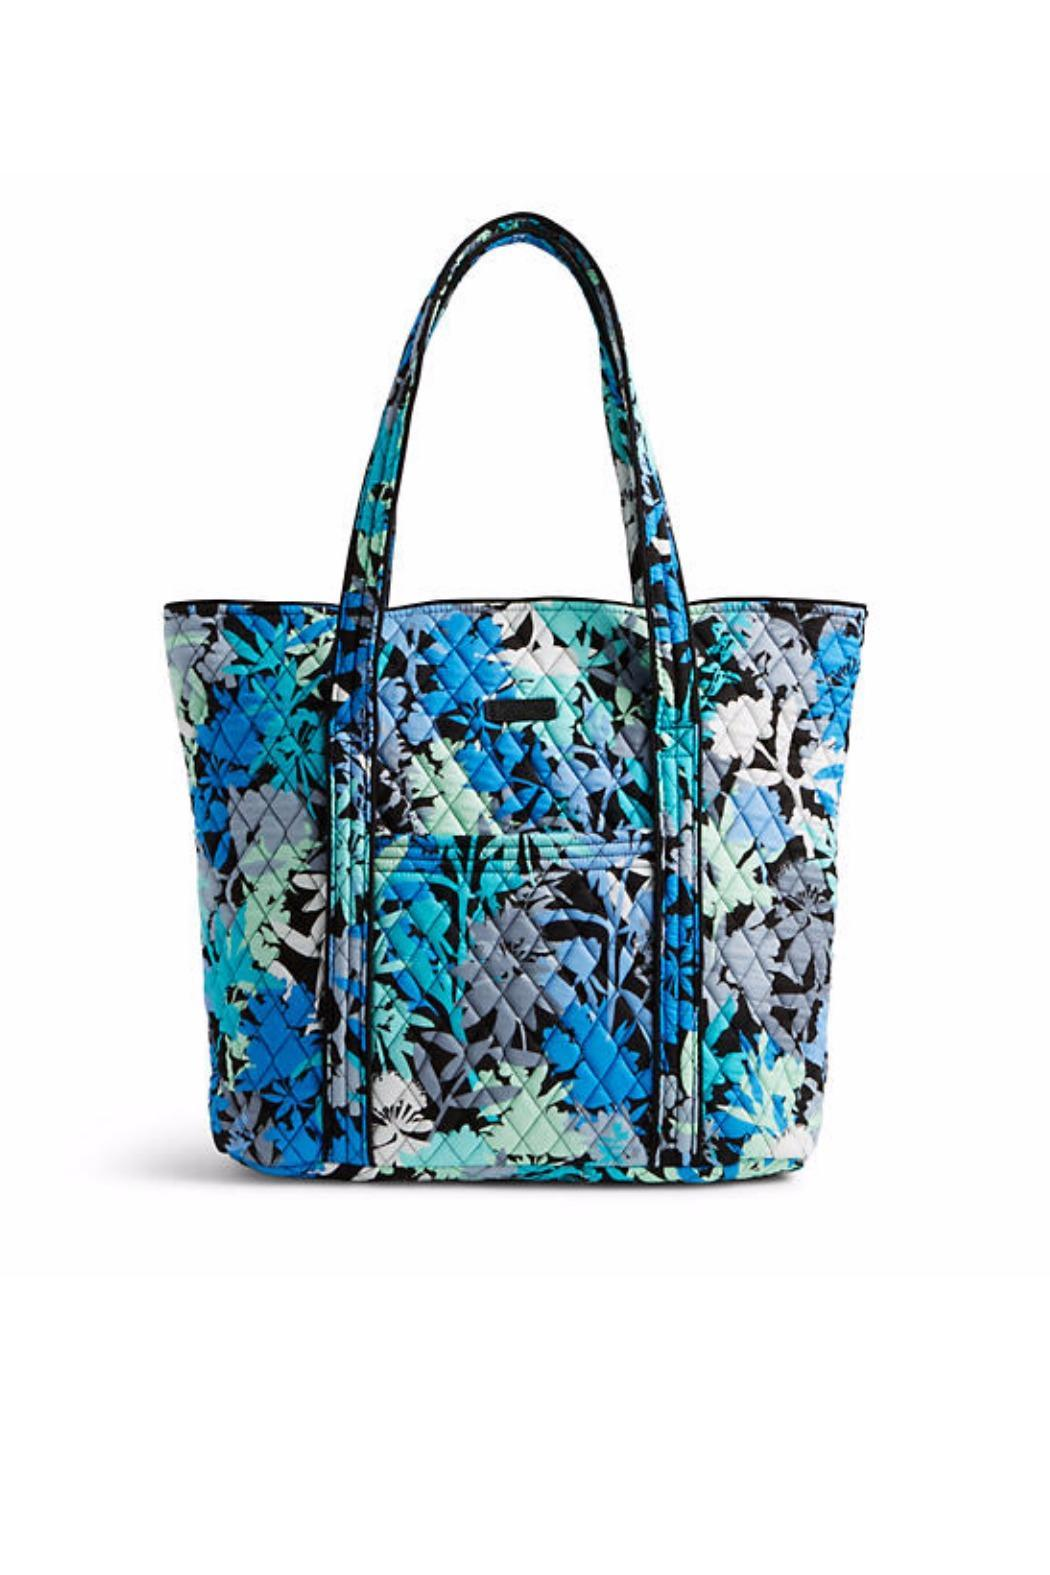 Vera Bradley Camofloral Tote From Kentucky By The Mole Hole Of